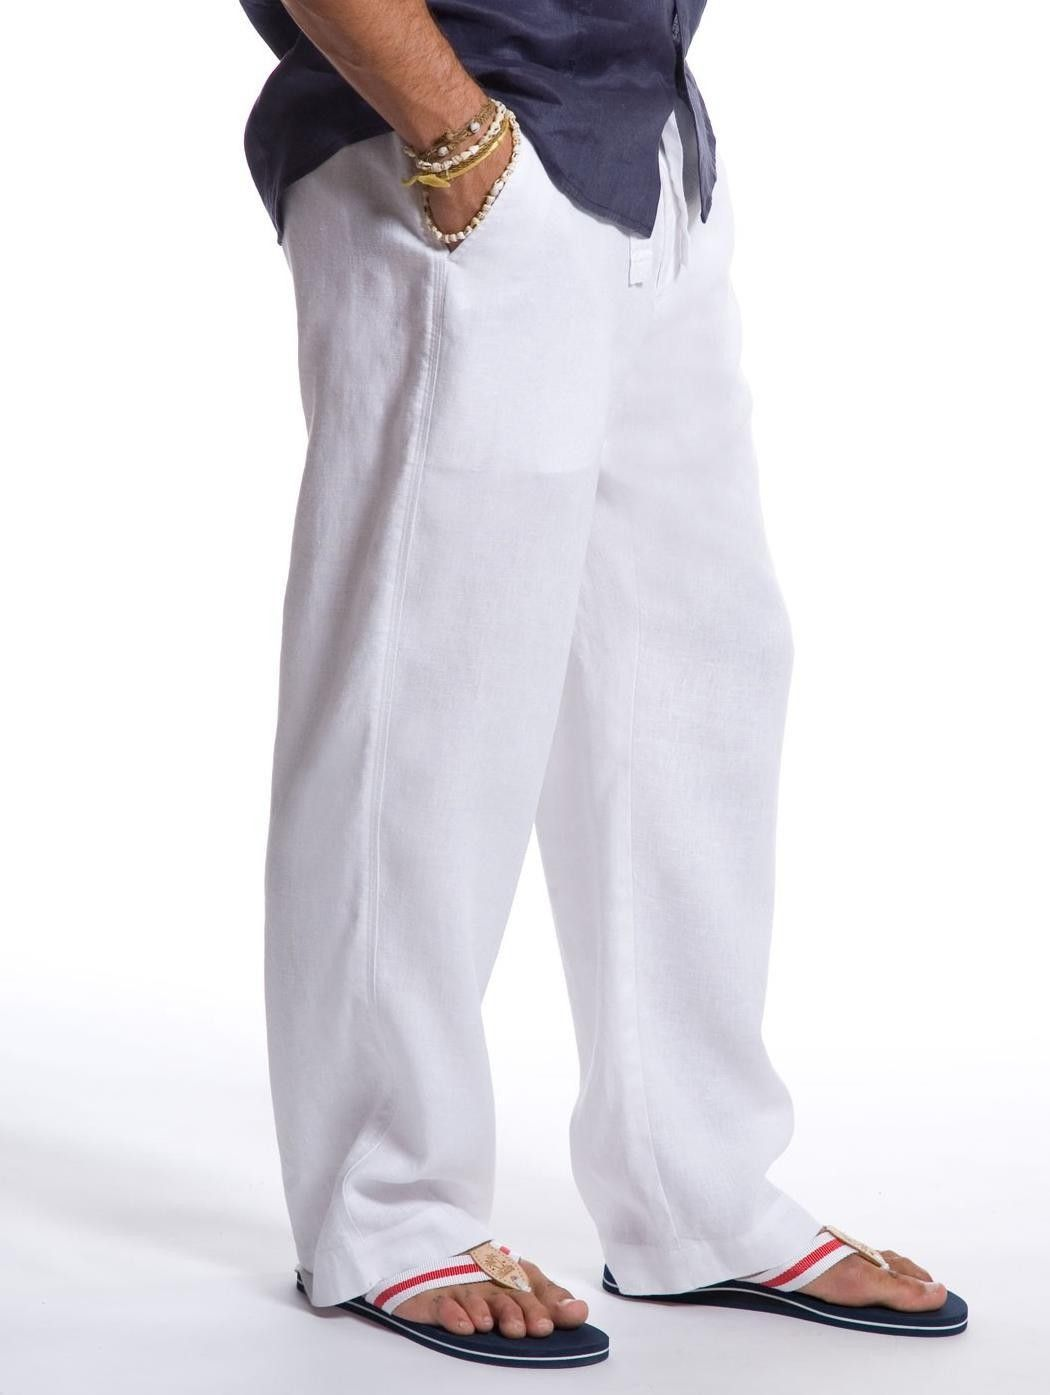 Men's Linen Pants | Cruise Attire and Tips | Pinterest | Linens